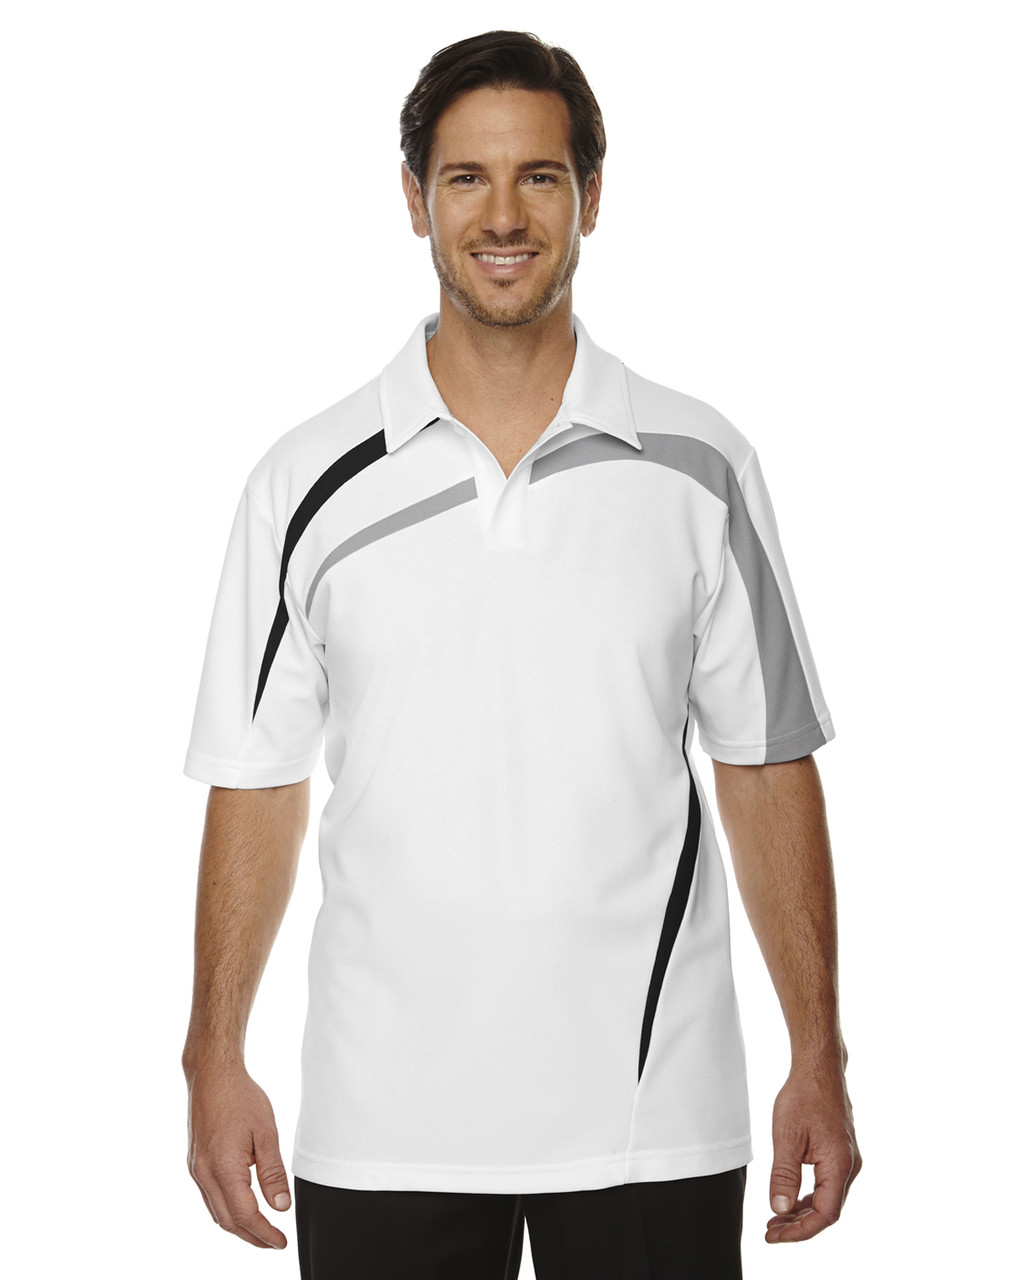 White - 88645 North End Sport Red Impact Performance Polyester Colourblock Polo Shirt